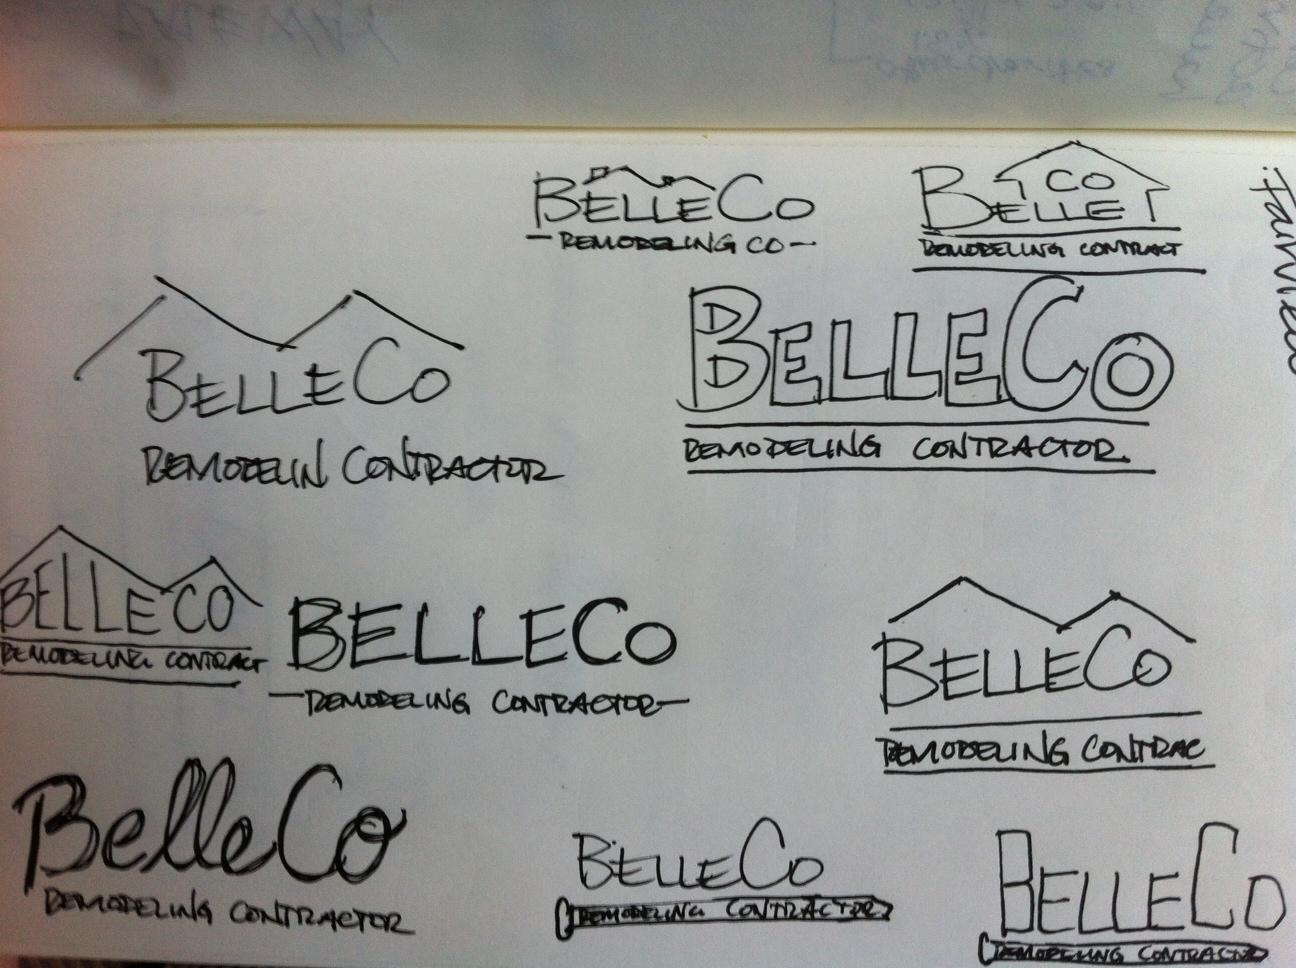 BelleCo / Self Logo - image 7 - student project